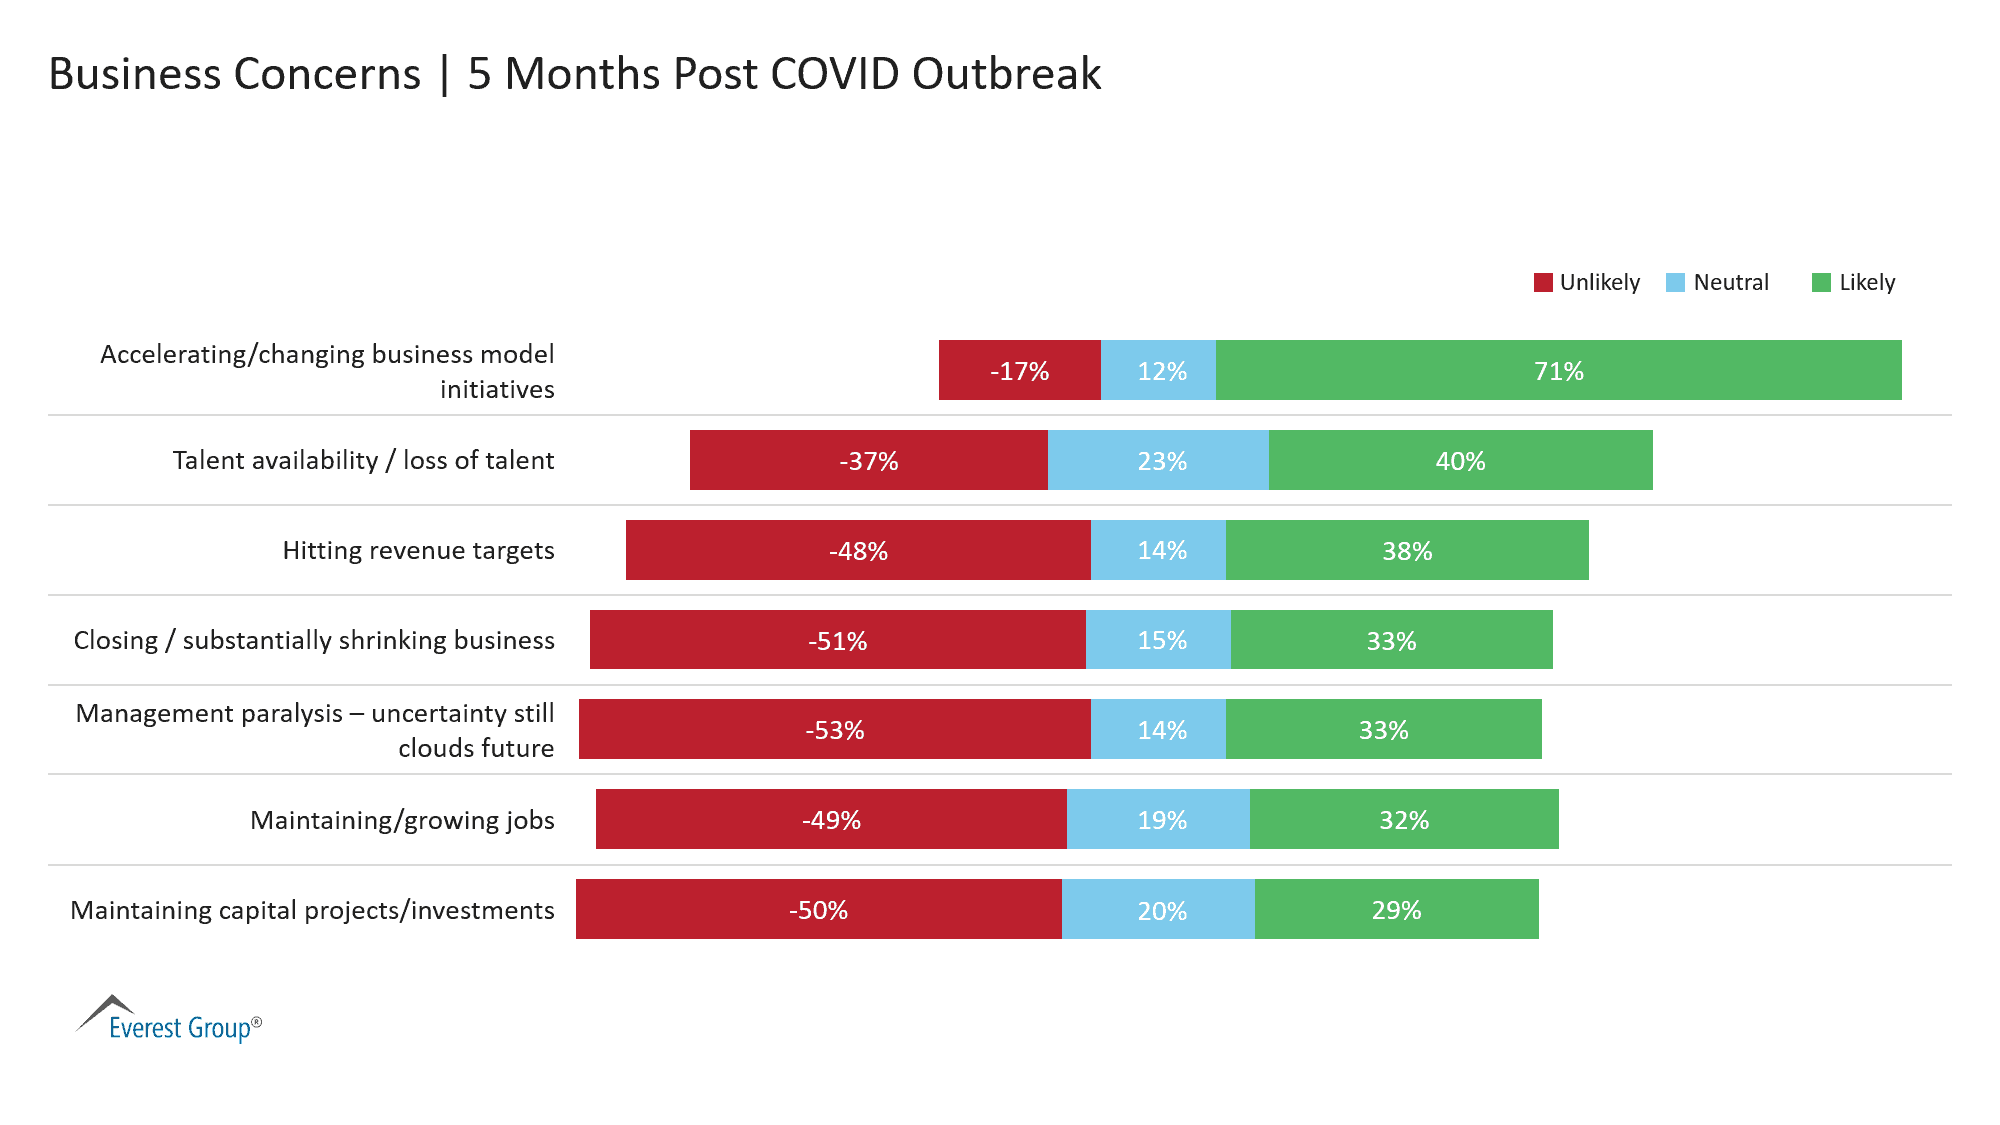 Business Concerns - 5 Months Post COVID Outbreak